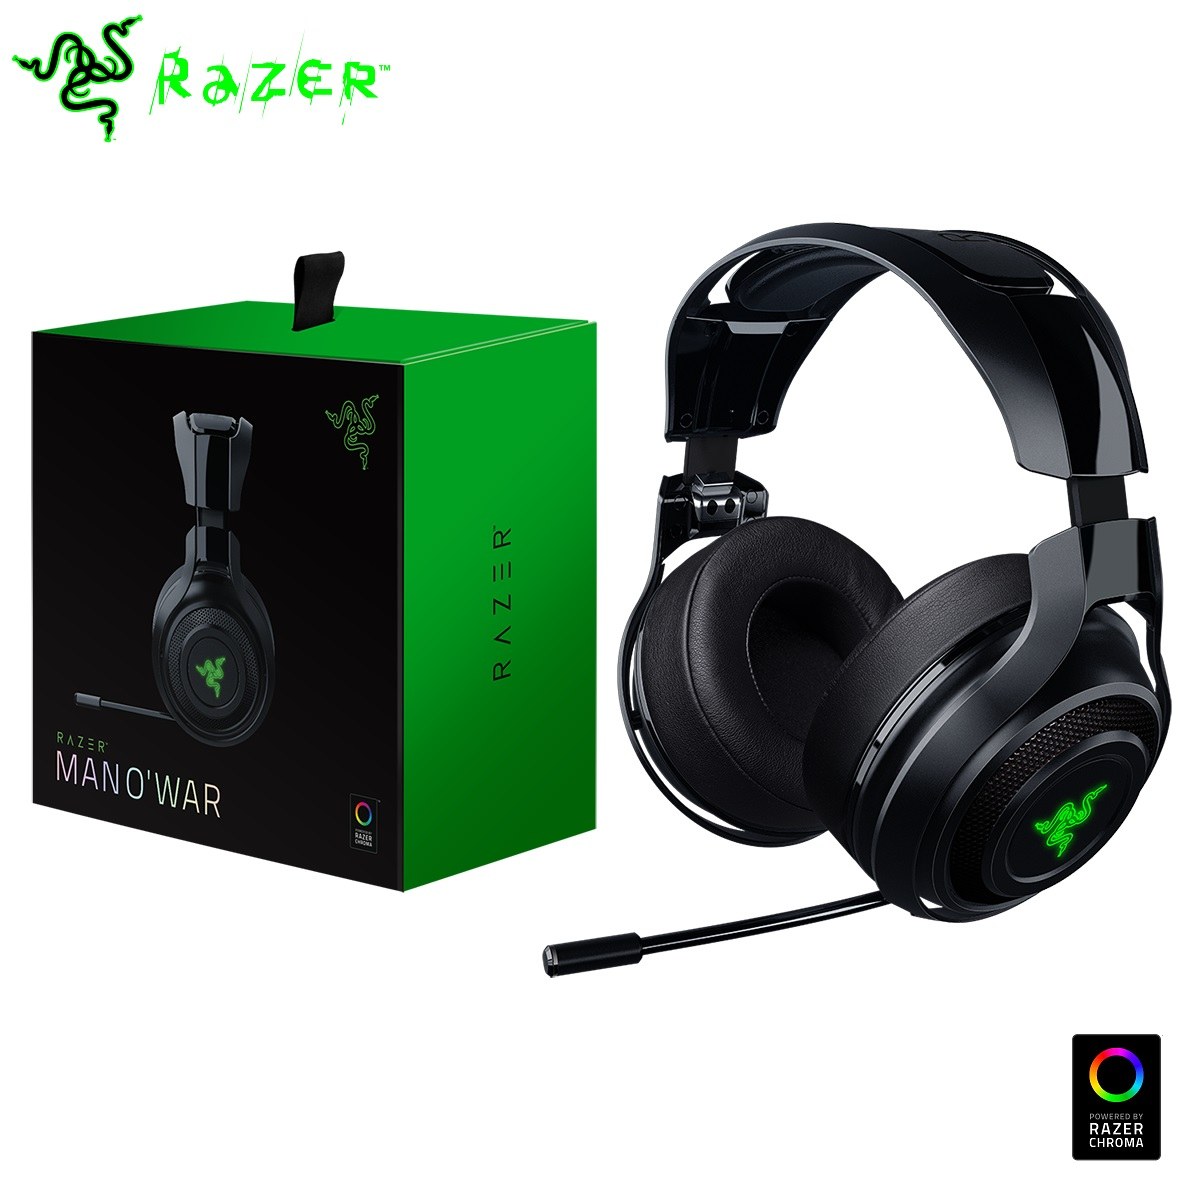 razer mano 39 war 2016 kabellos 7 1 surround sound spiele. Black Bedroom Furniture Sets. Home Design Ideas